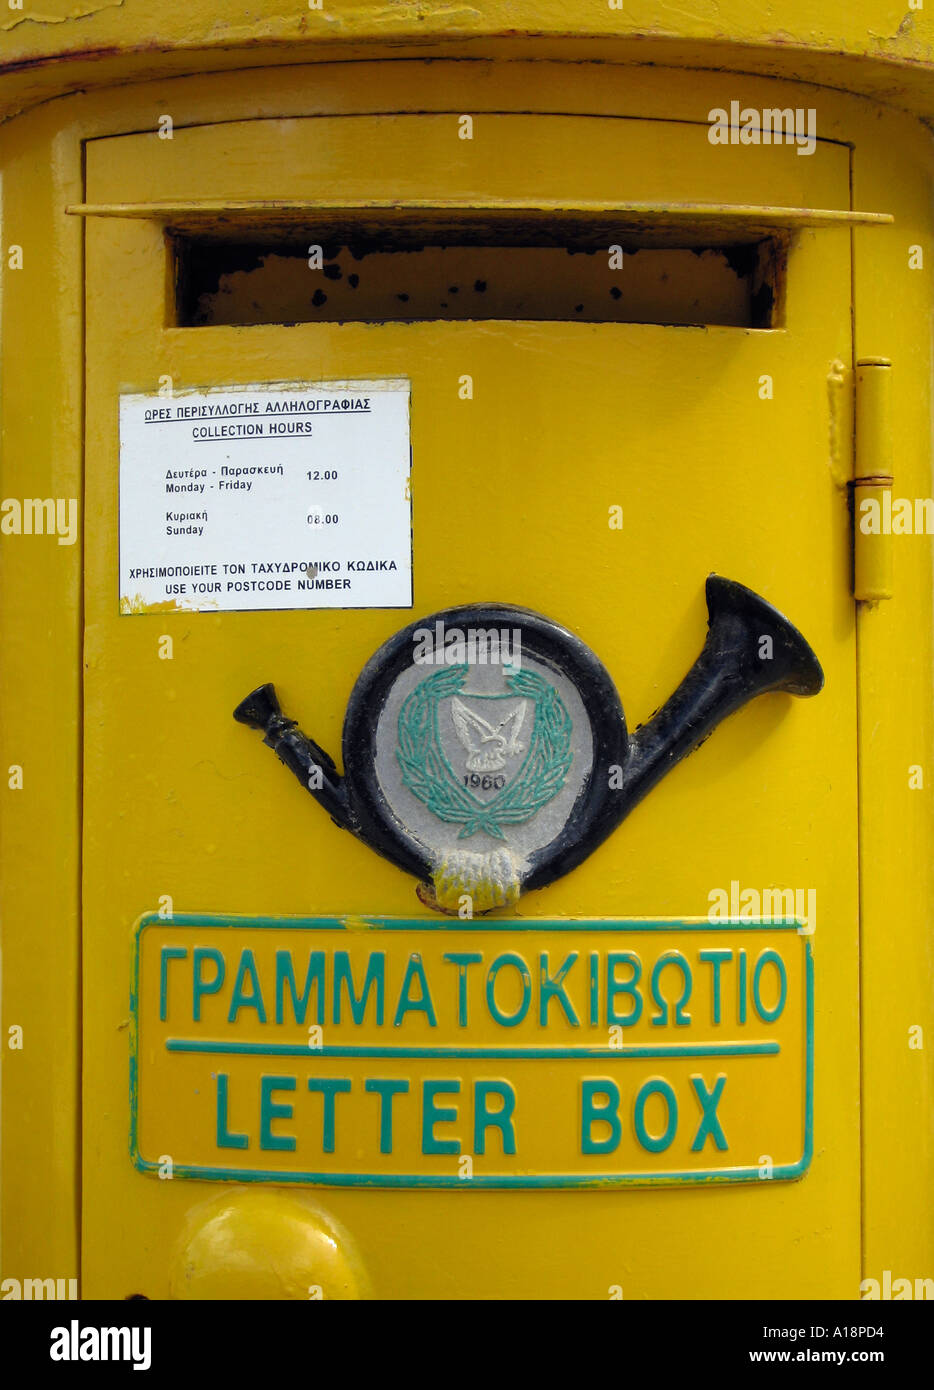 A yellow postal letter box as seen on the mediteranian island of Cyprus - Stock Image